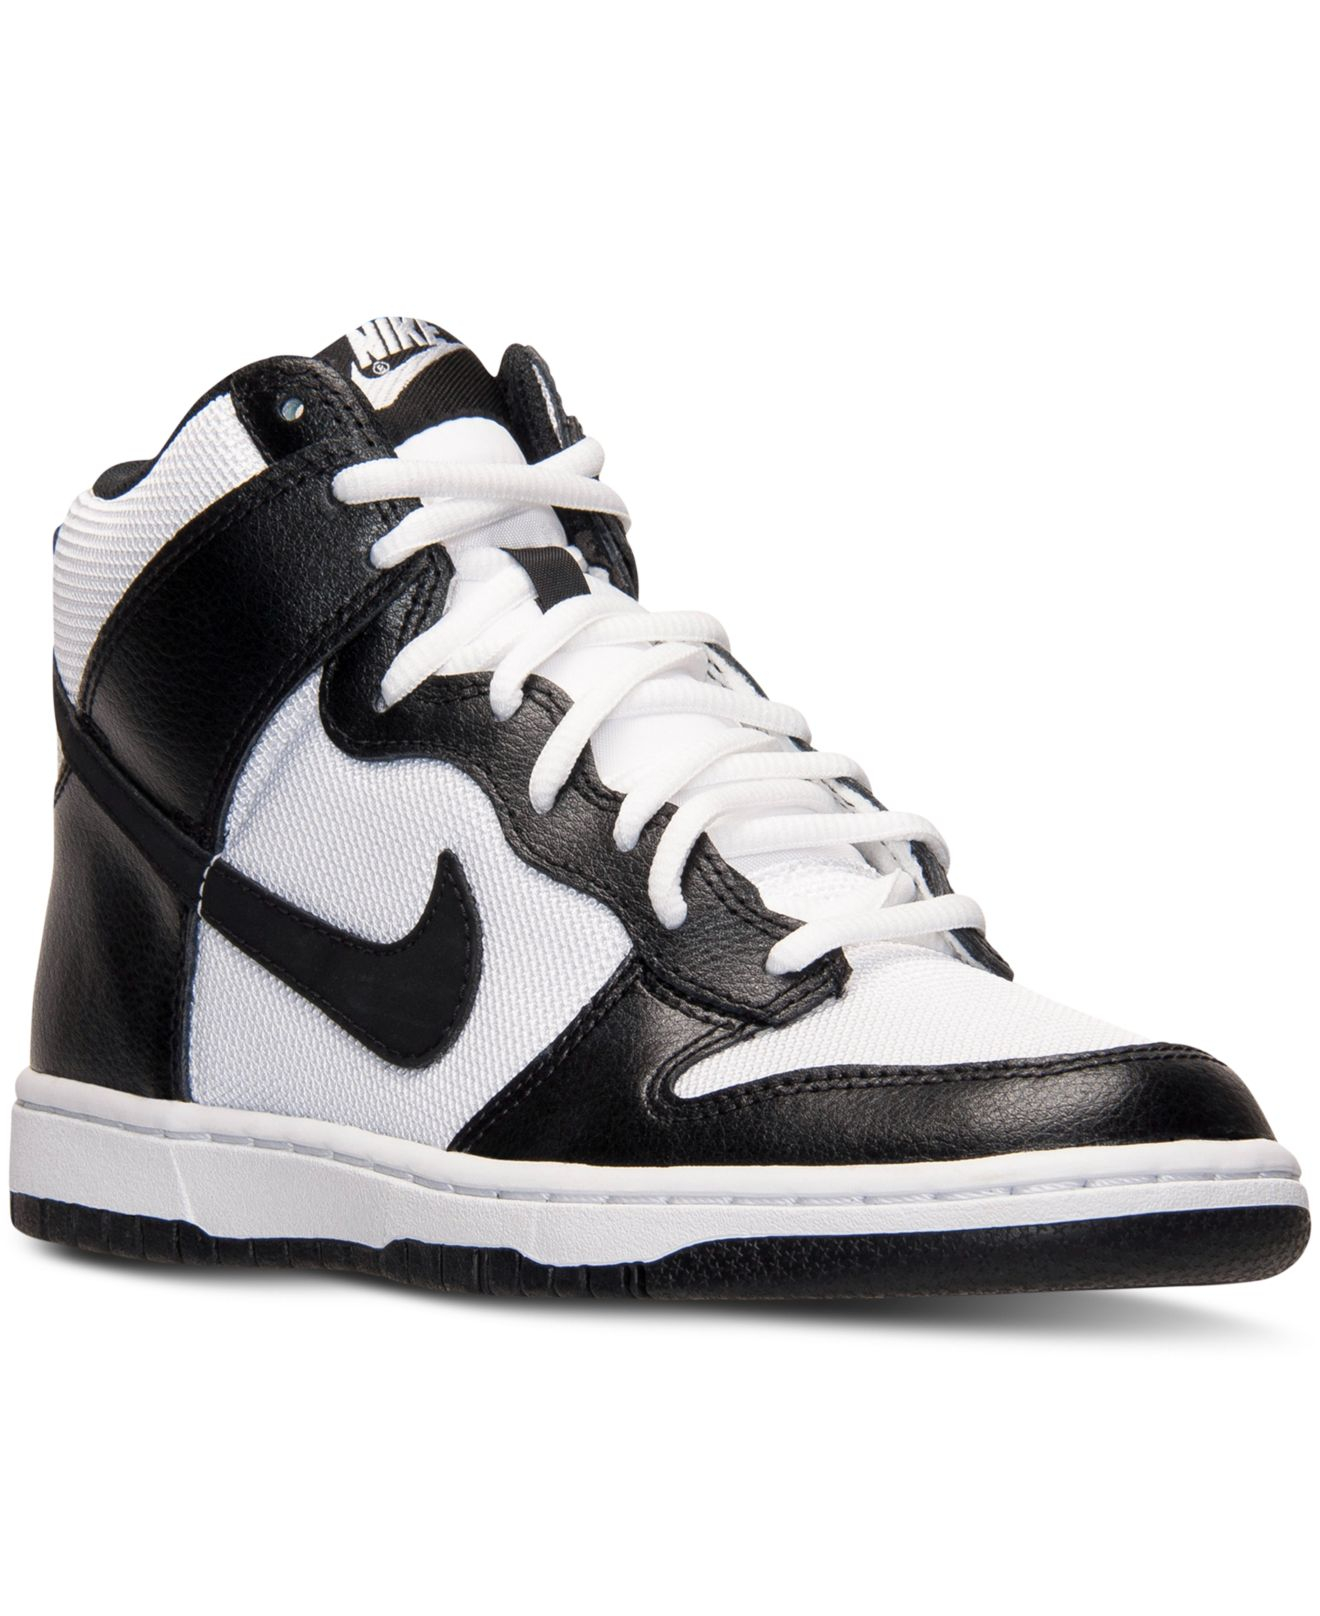 Lyst - Nike Womens Dunk High Skinny Casual Sneakers From -1150